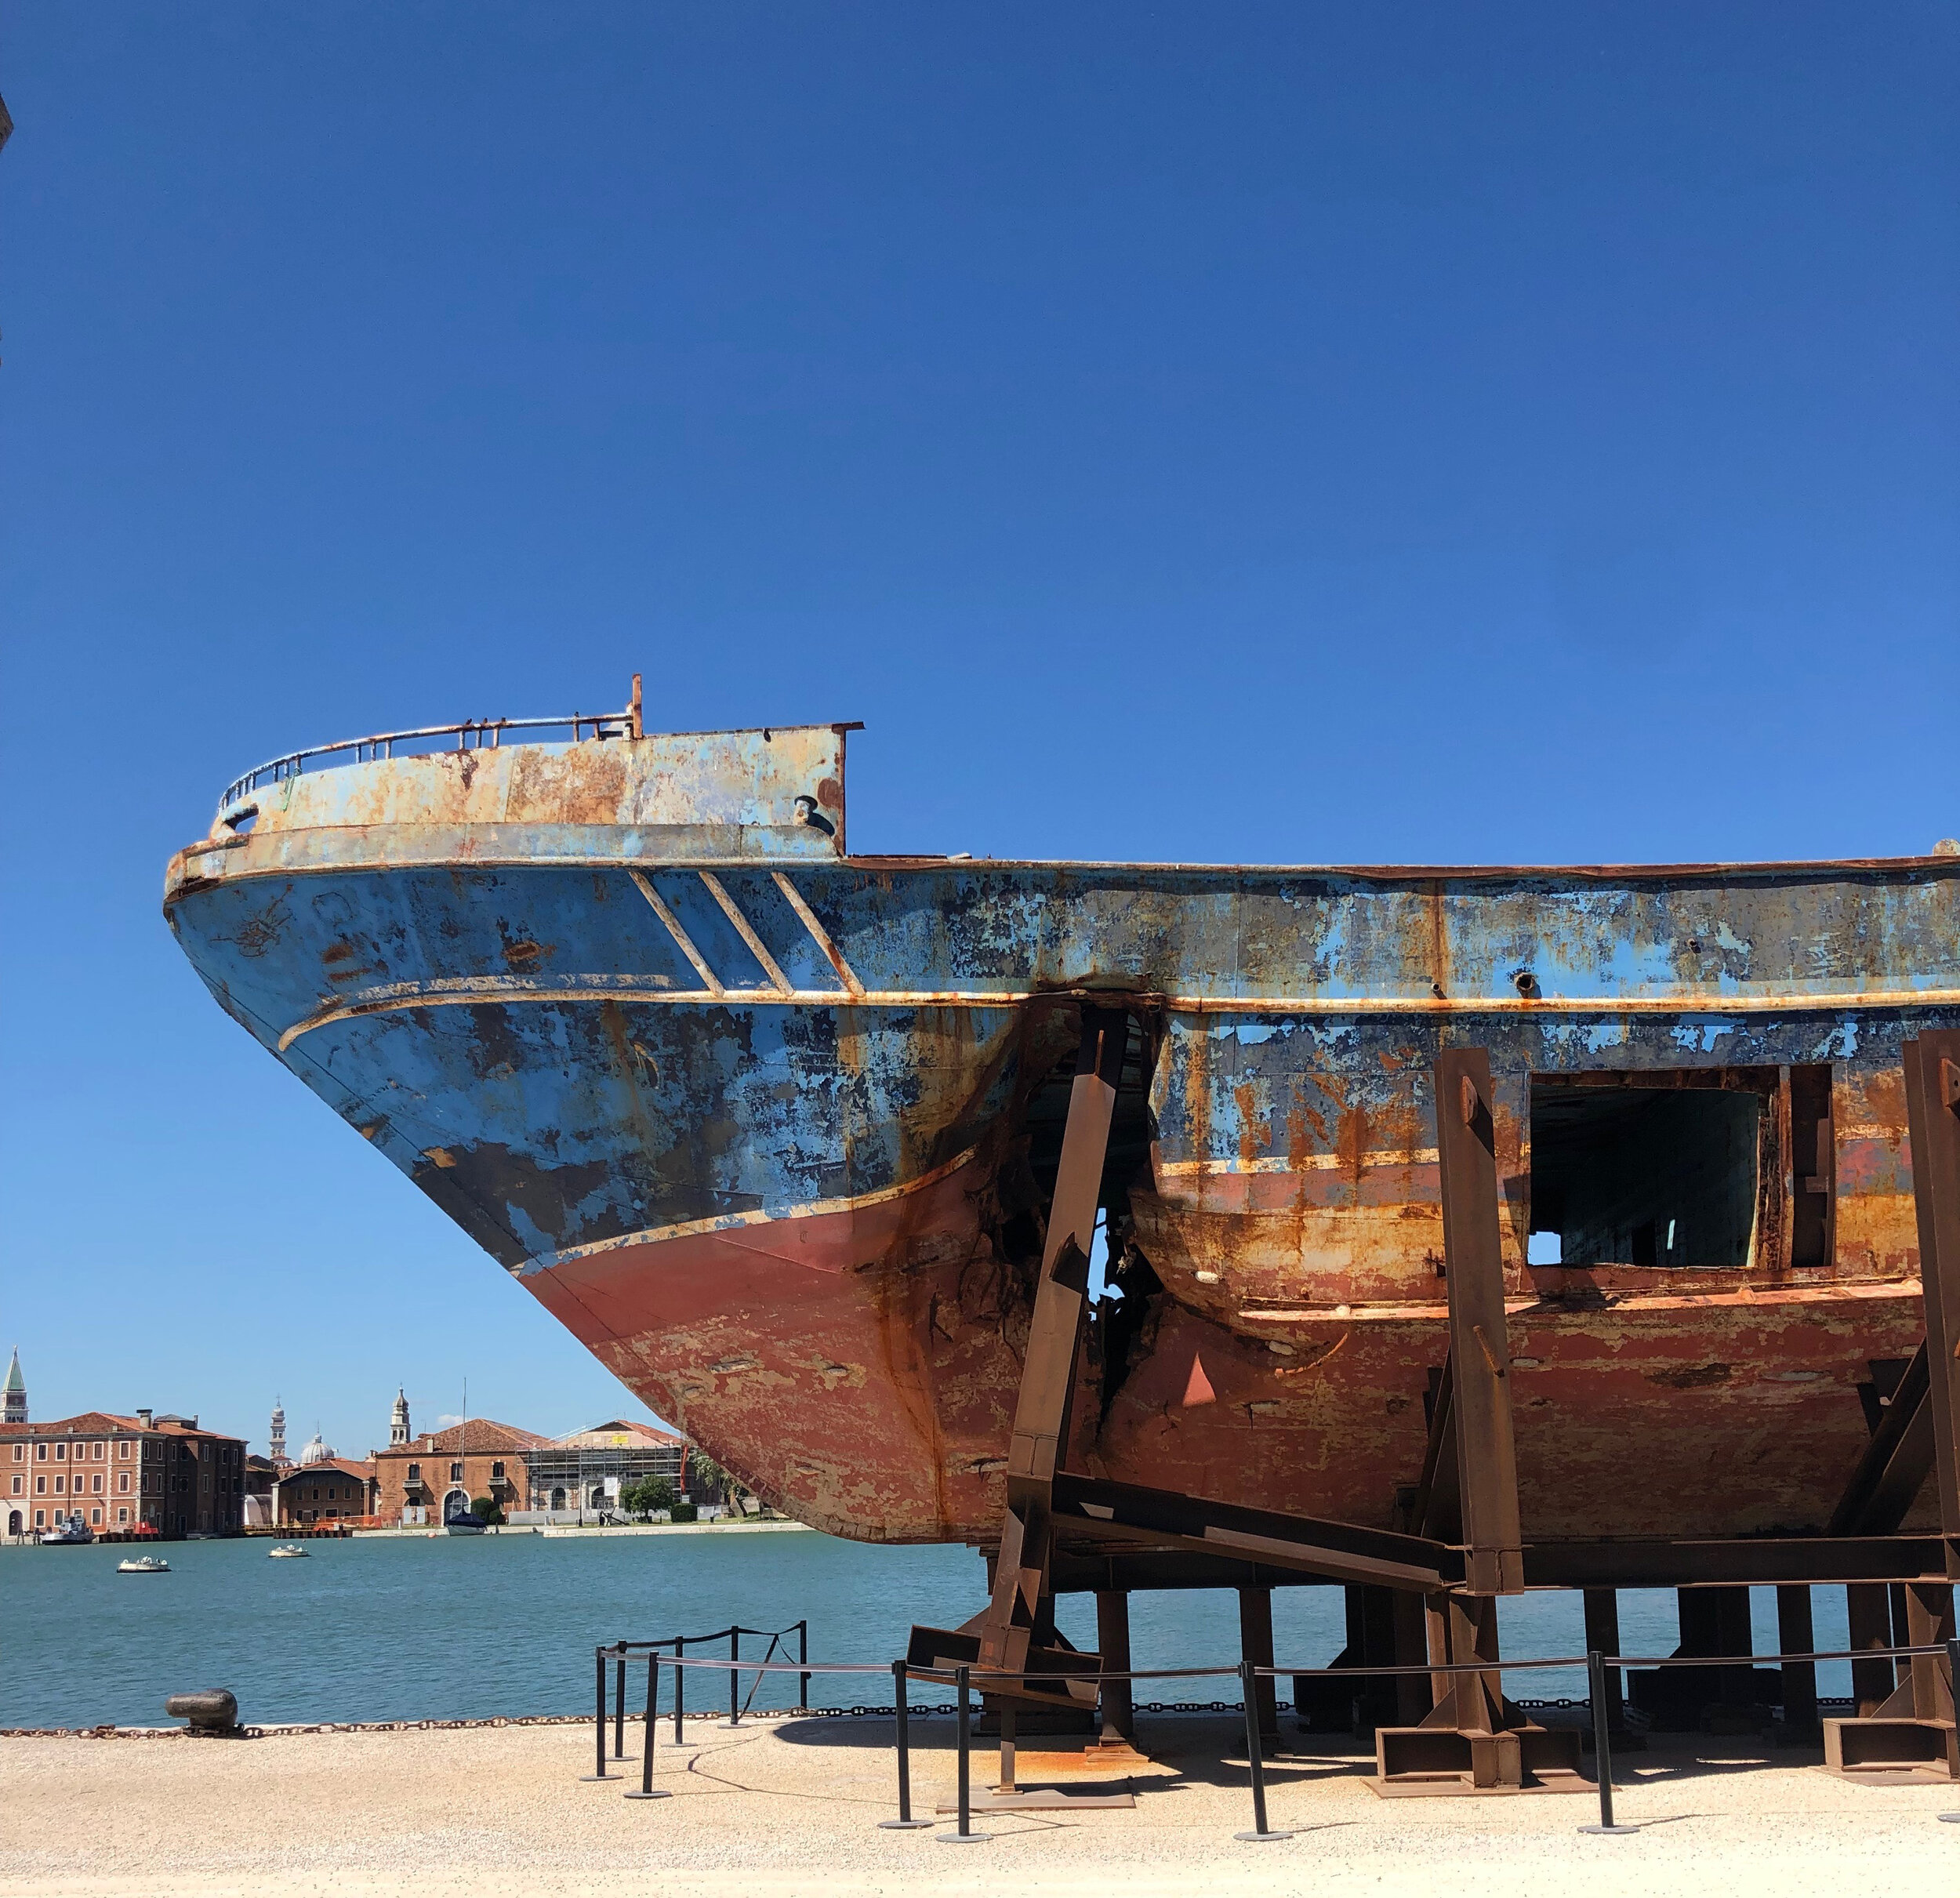 Christoph Büchel's Barca Nostra at the Venice Biennale